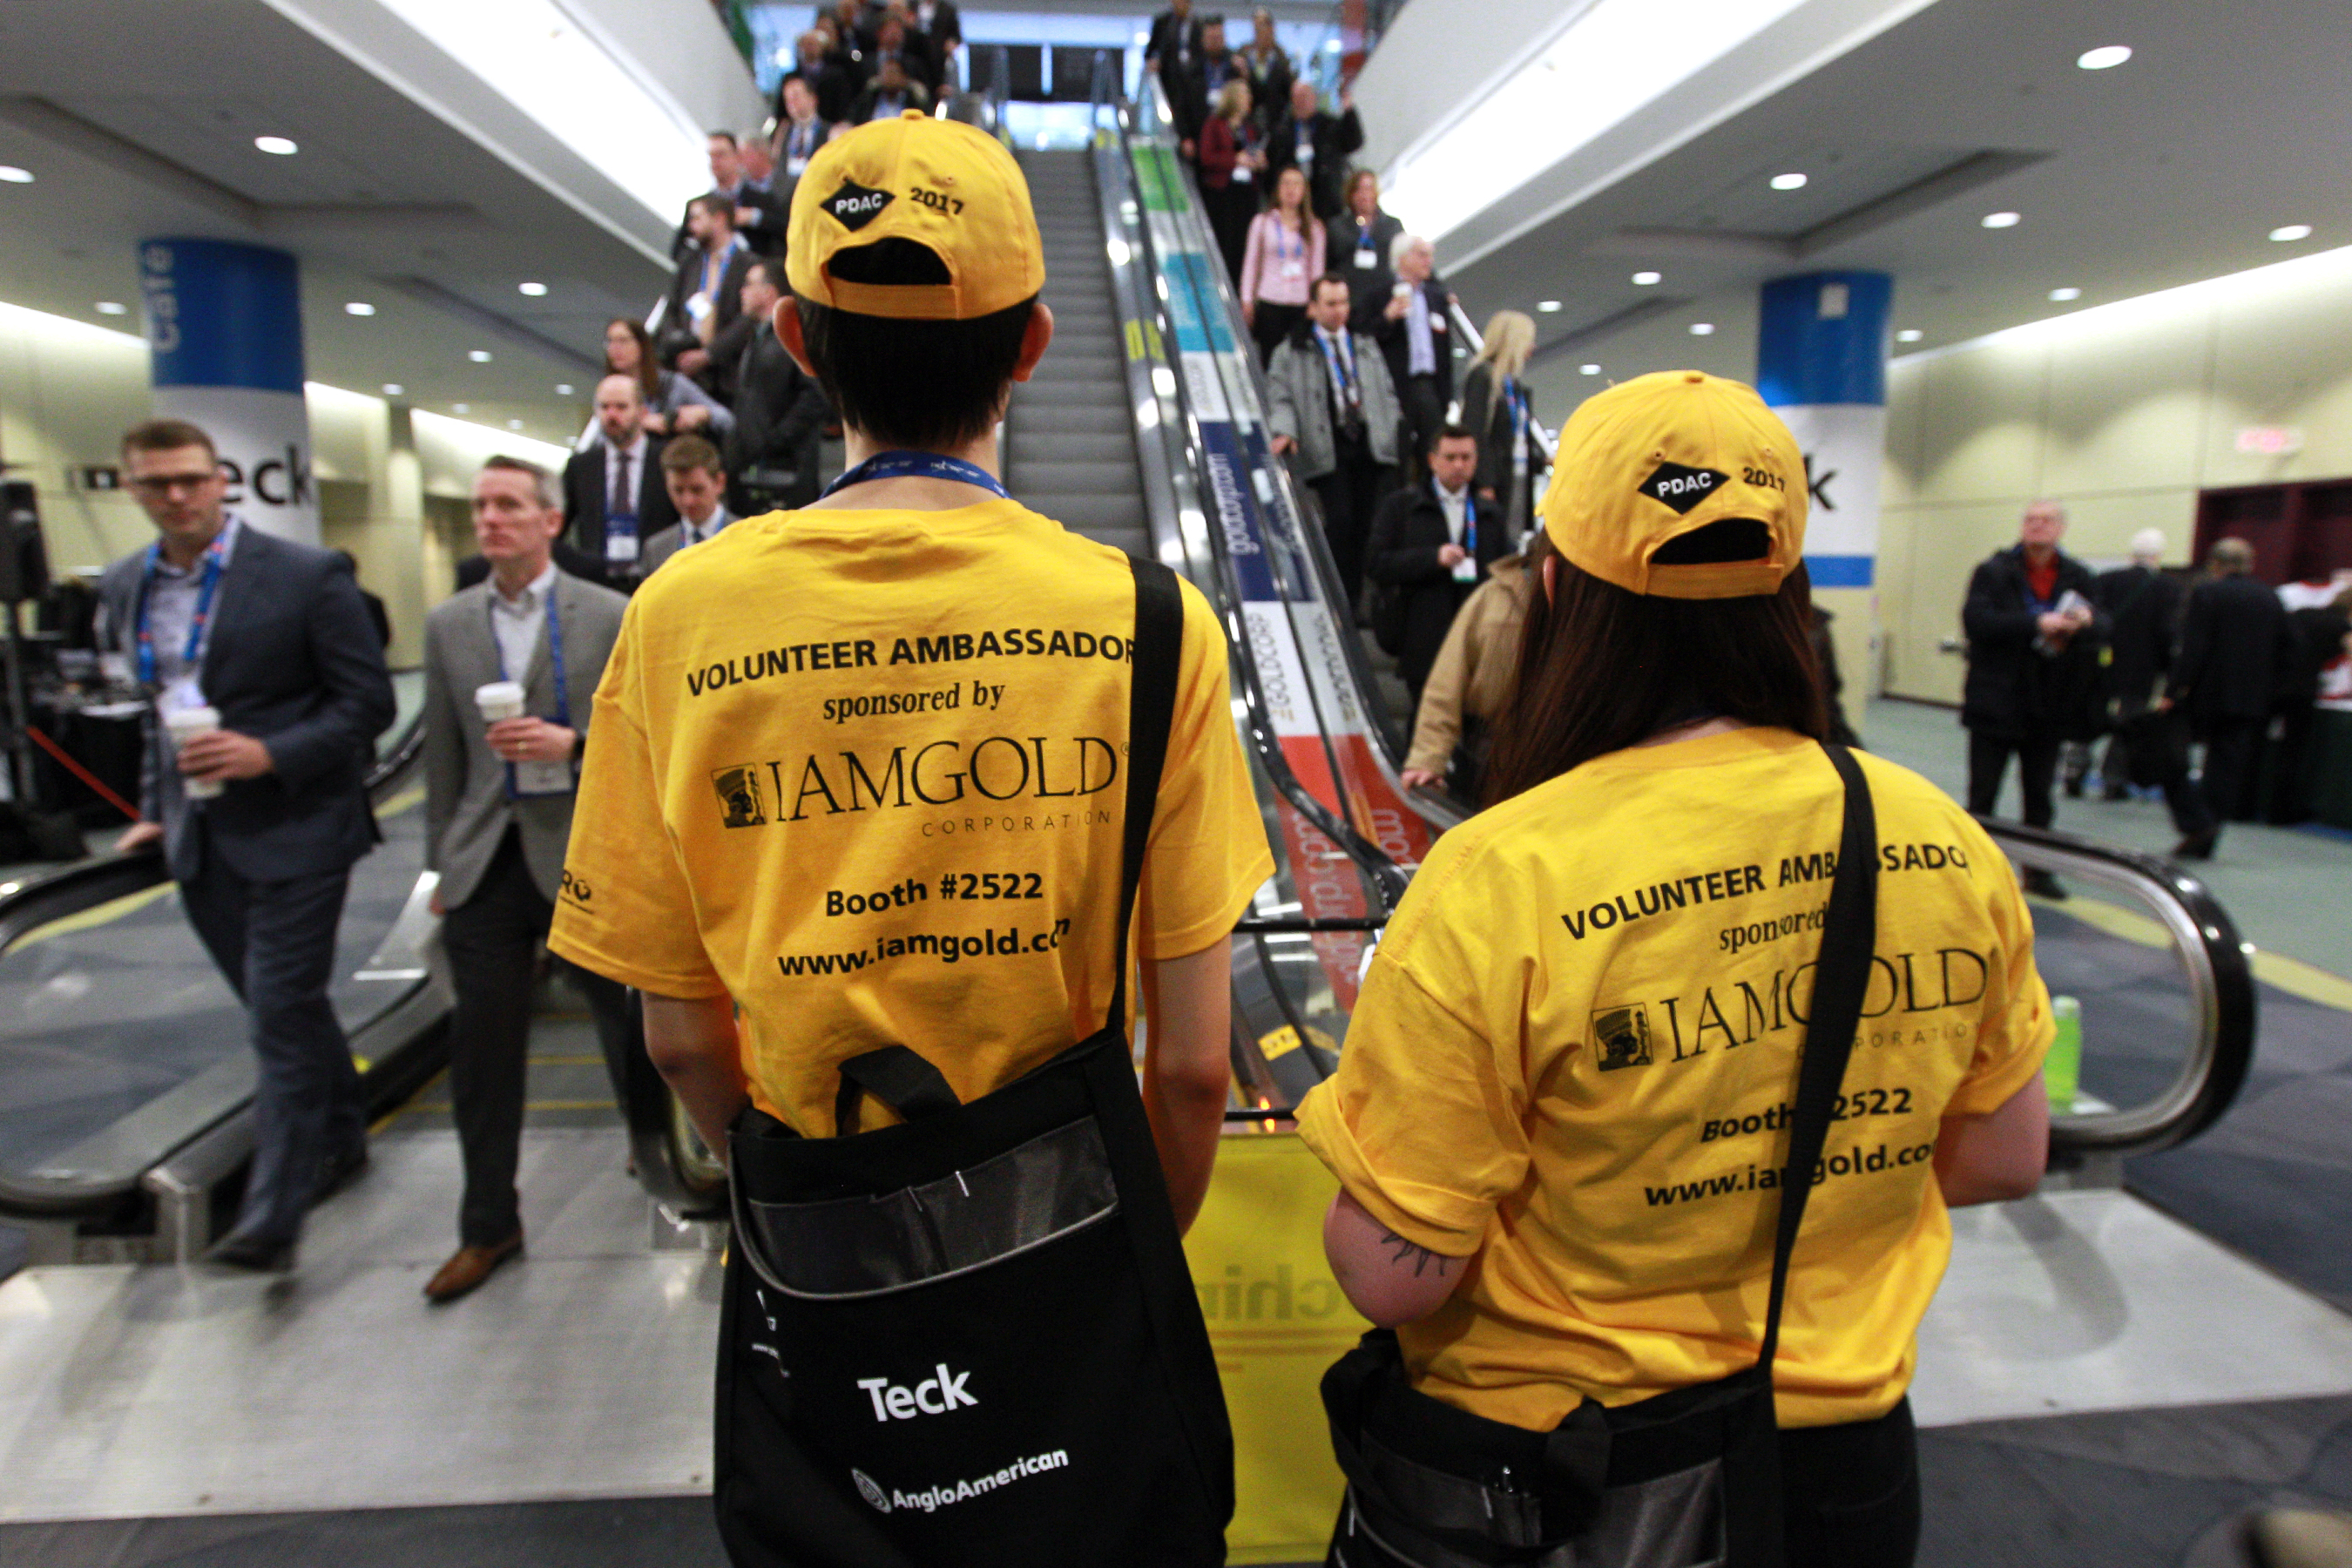 Convention Ambassadors sponsored by IAMGOLD Corporation